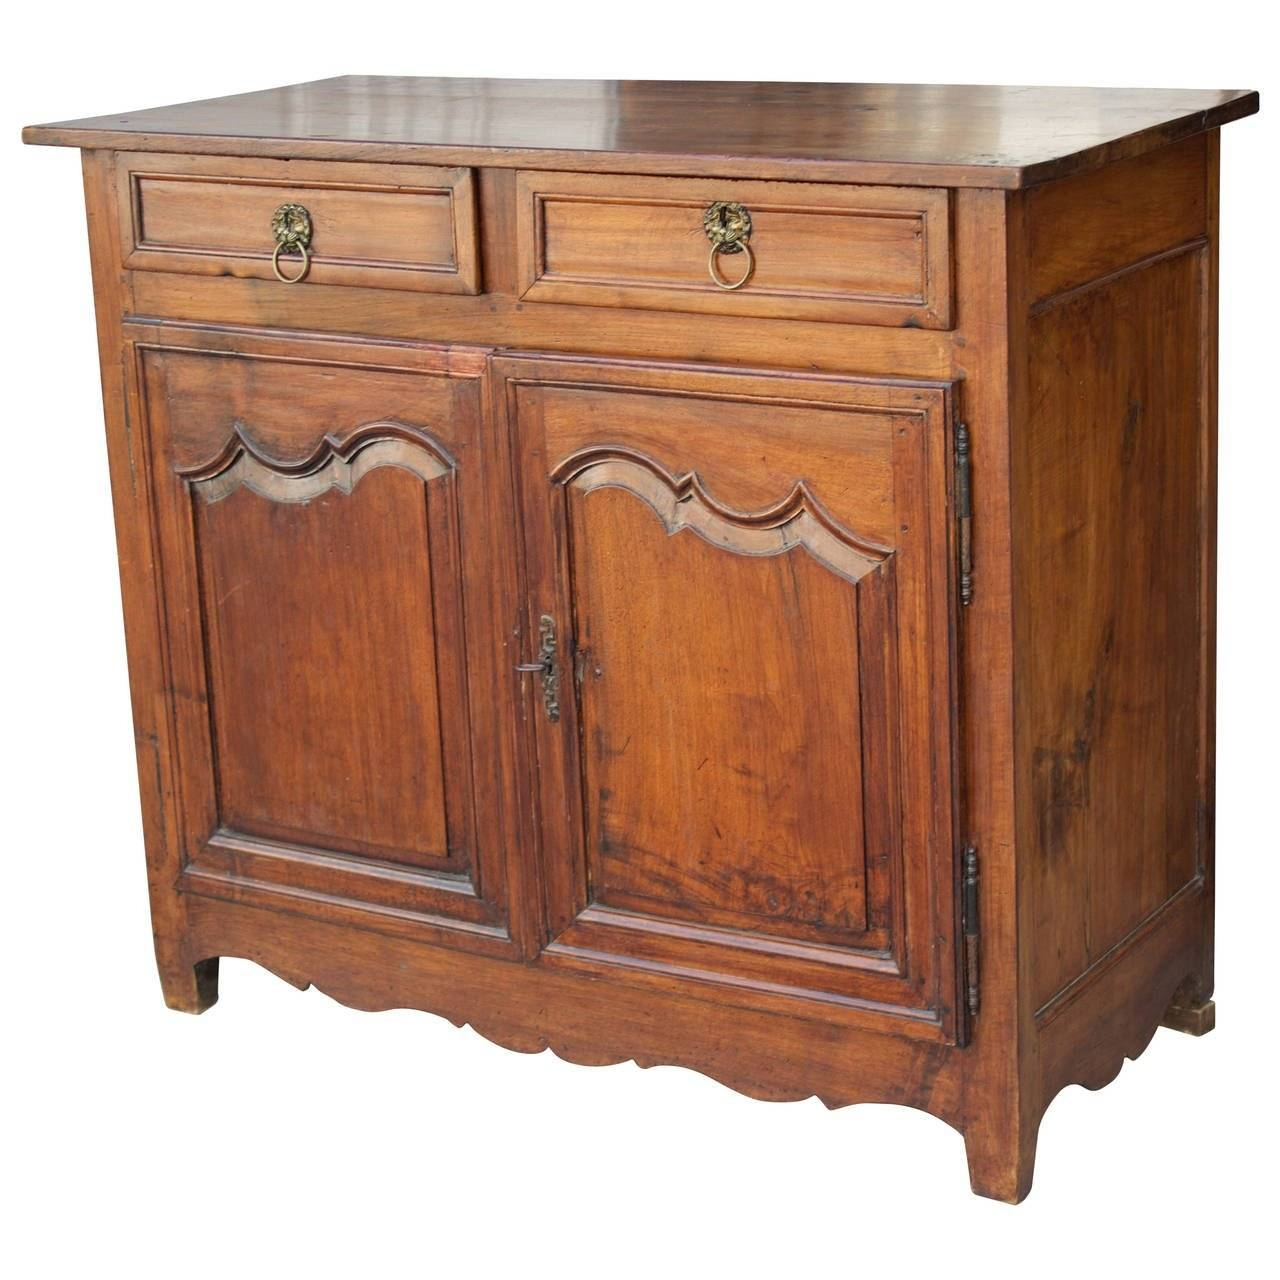 18Th Century French Country Louis Xiv Walnut Buffet Or Sideboard with French Country Sideboards (Image 2 of 30)